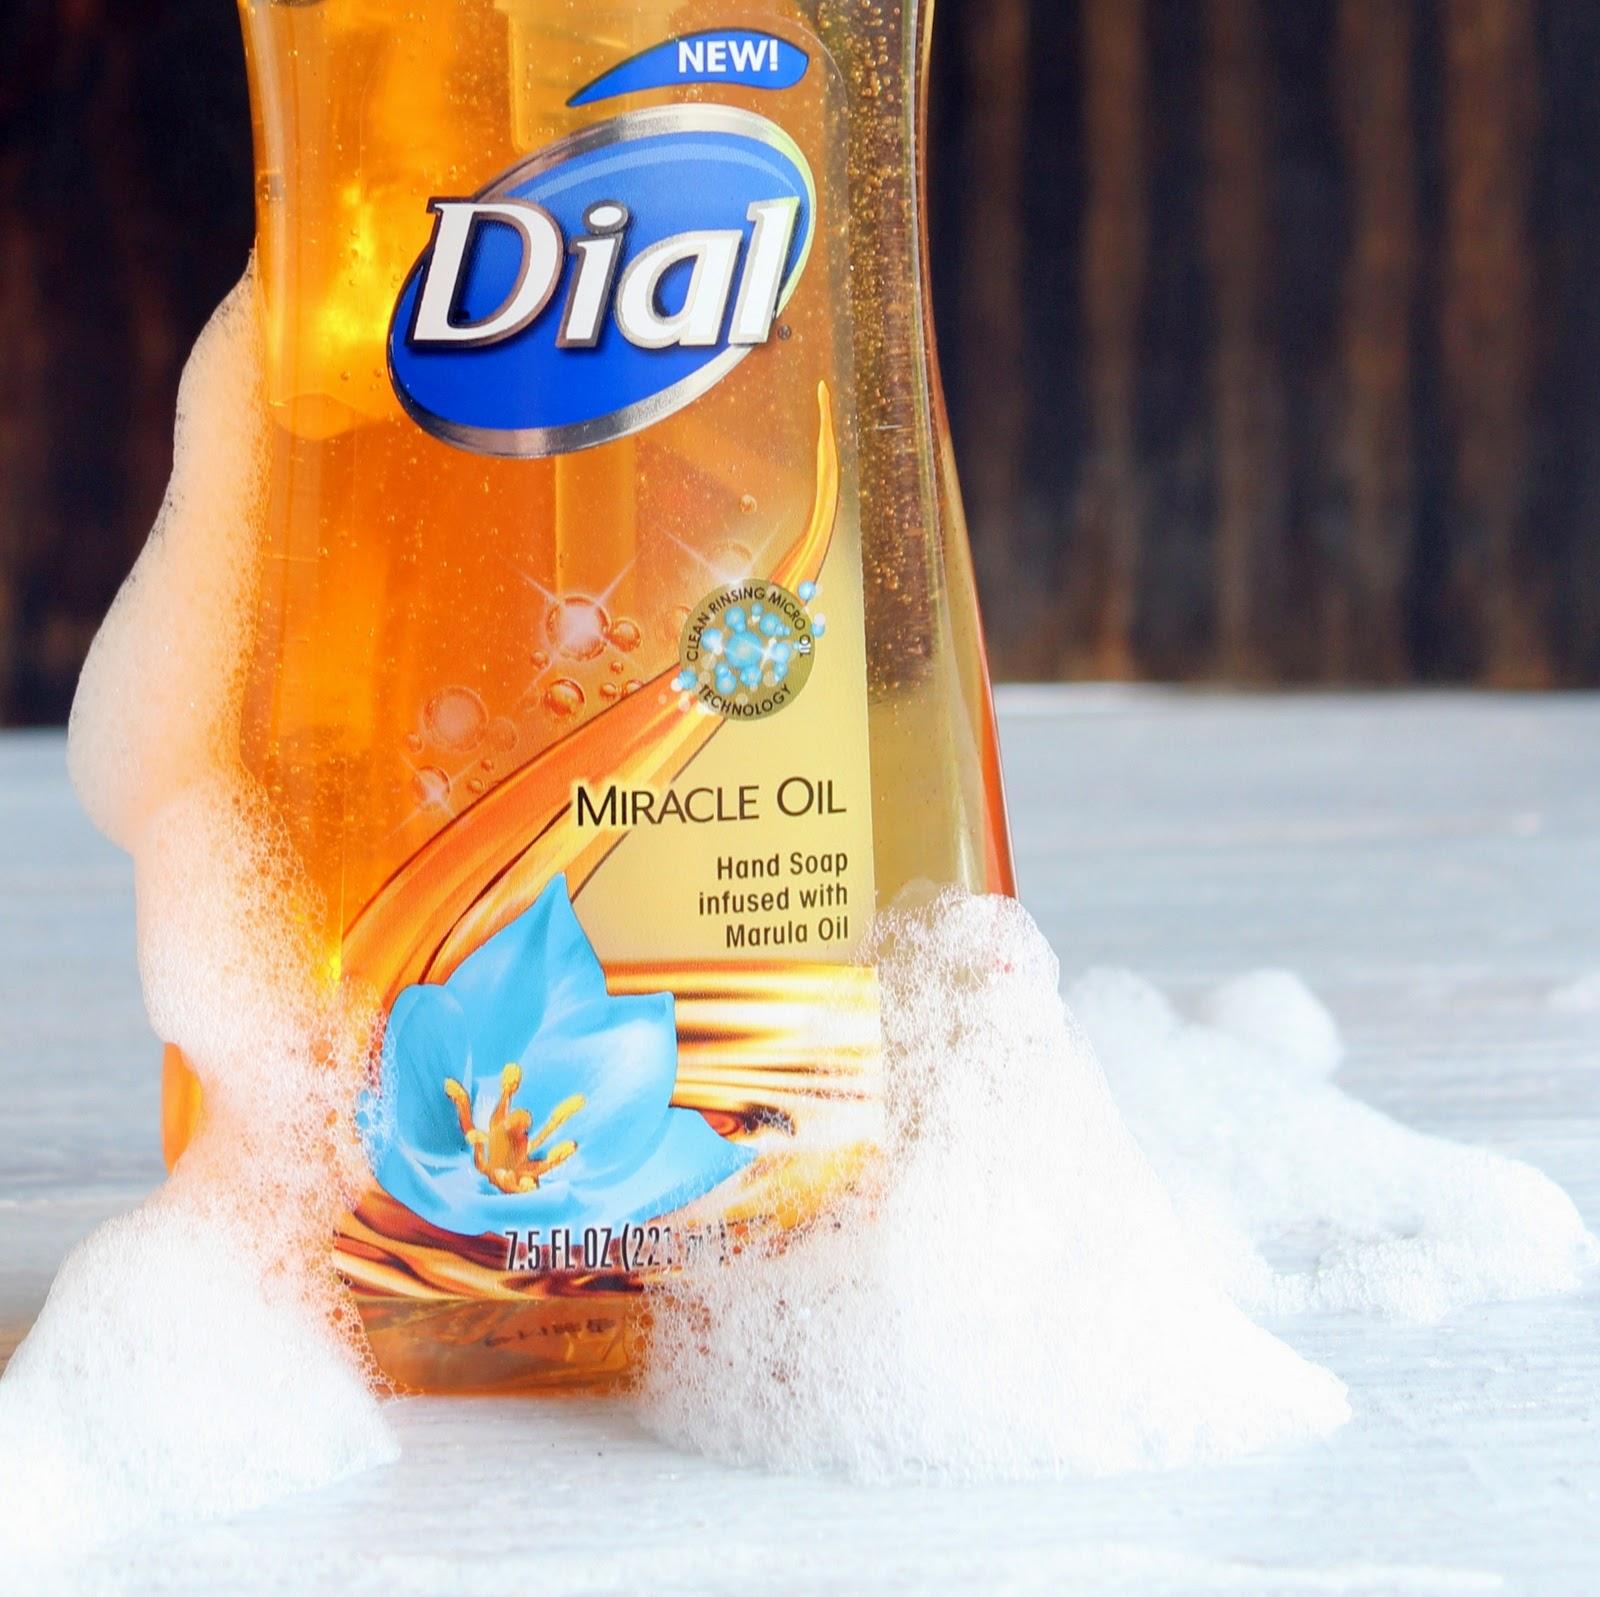 Dial Miracle Oil hand soap with marula oil